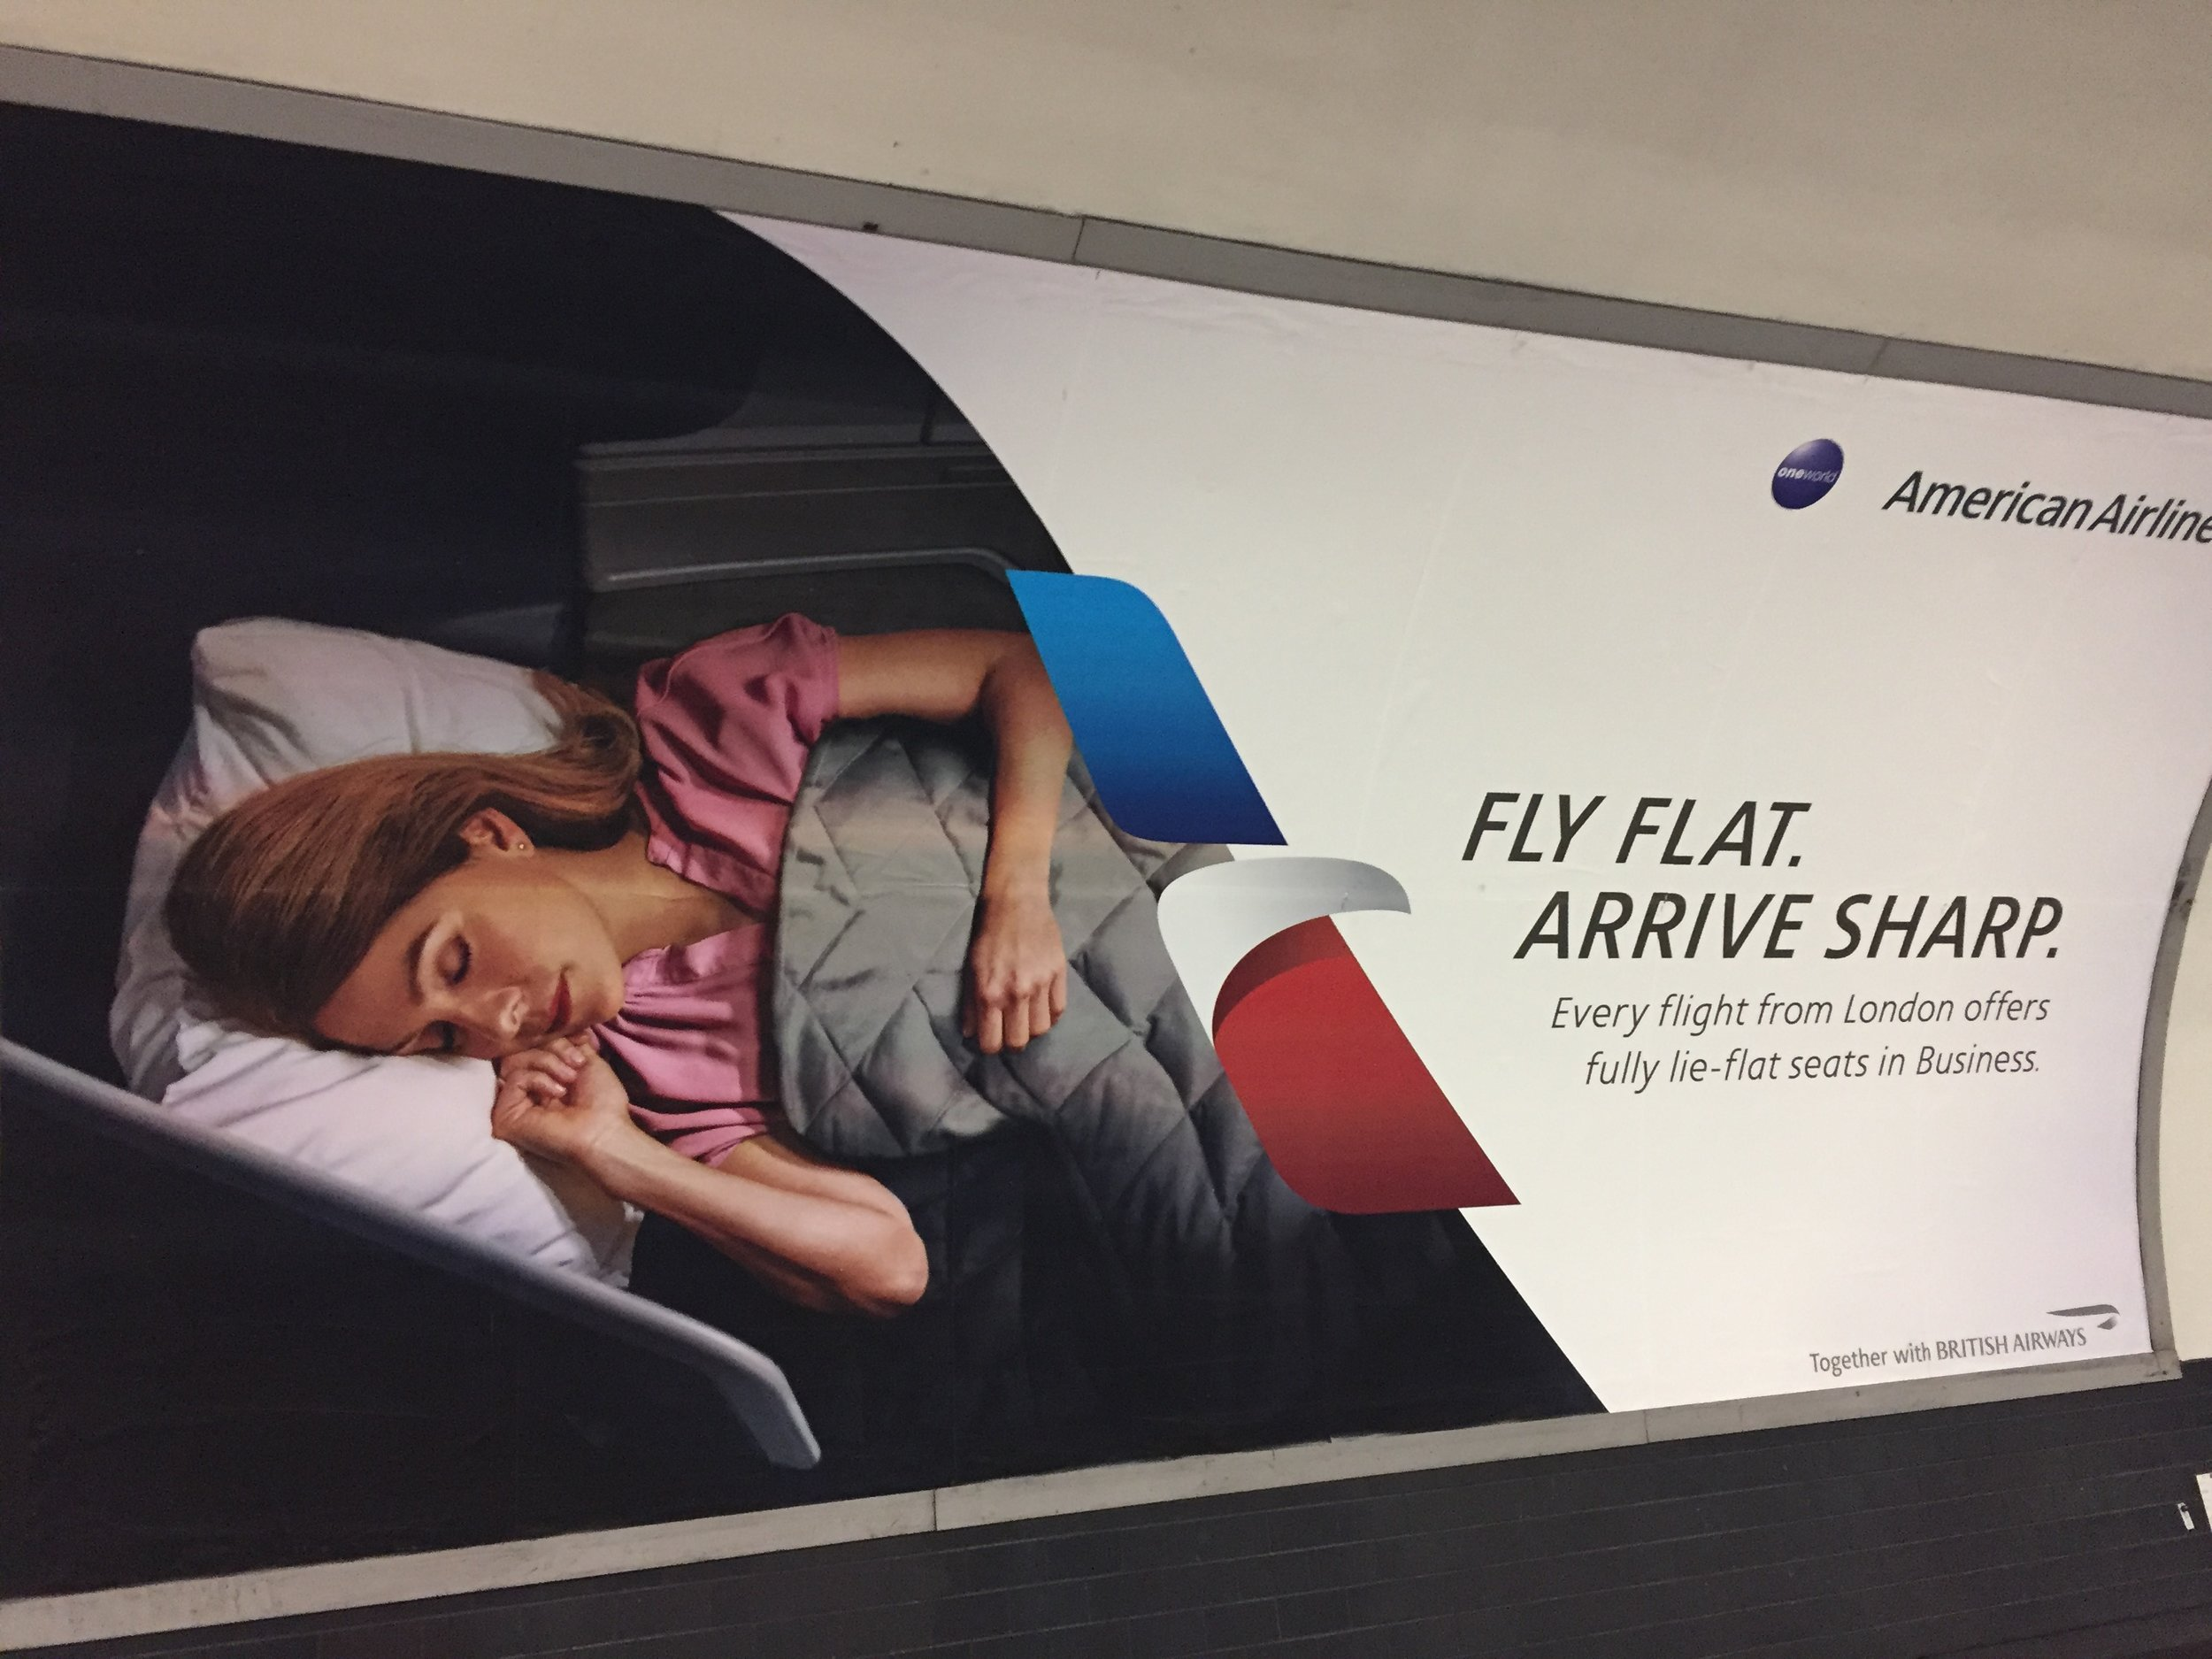 American Airlines advertising.JPG